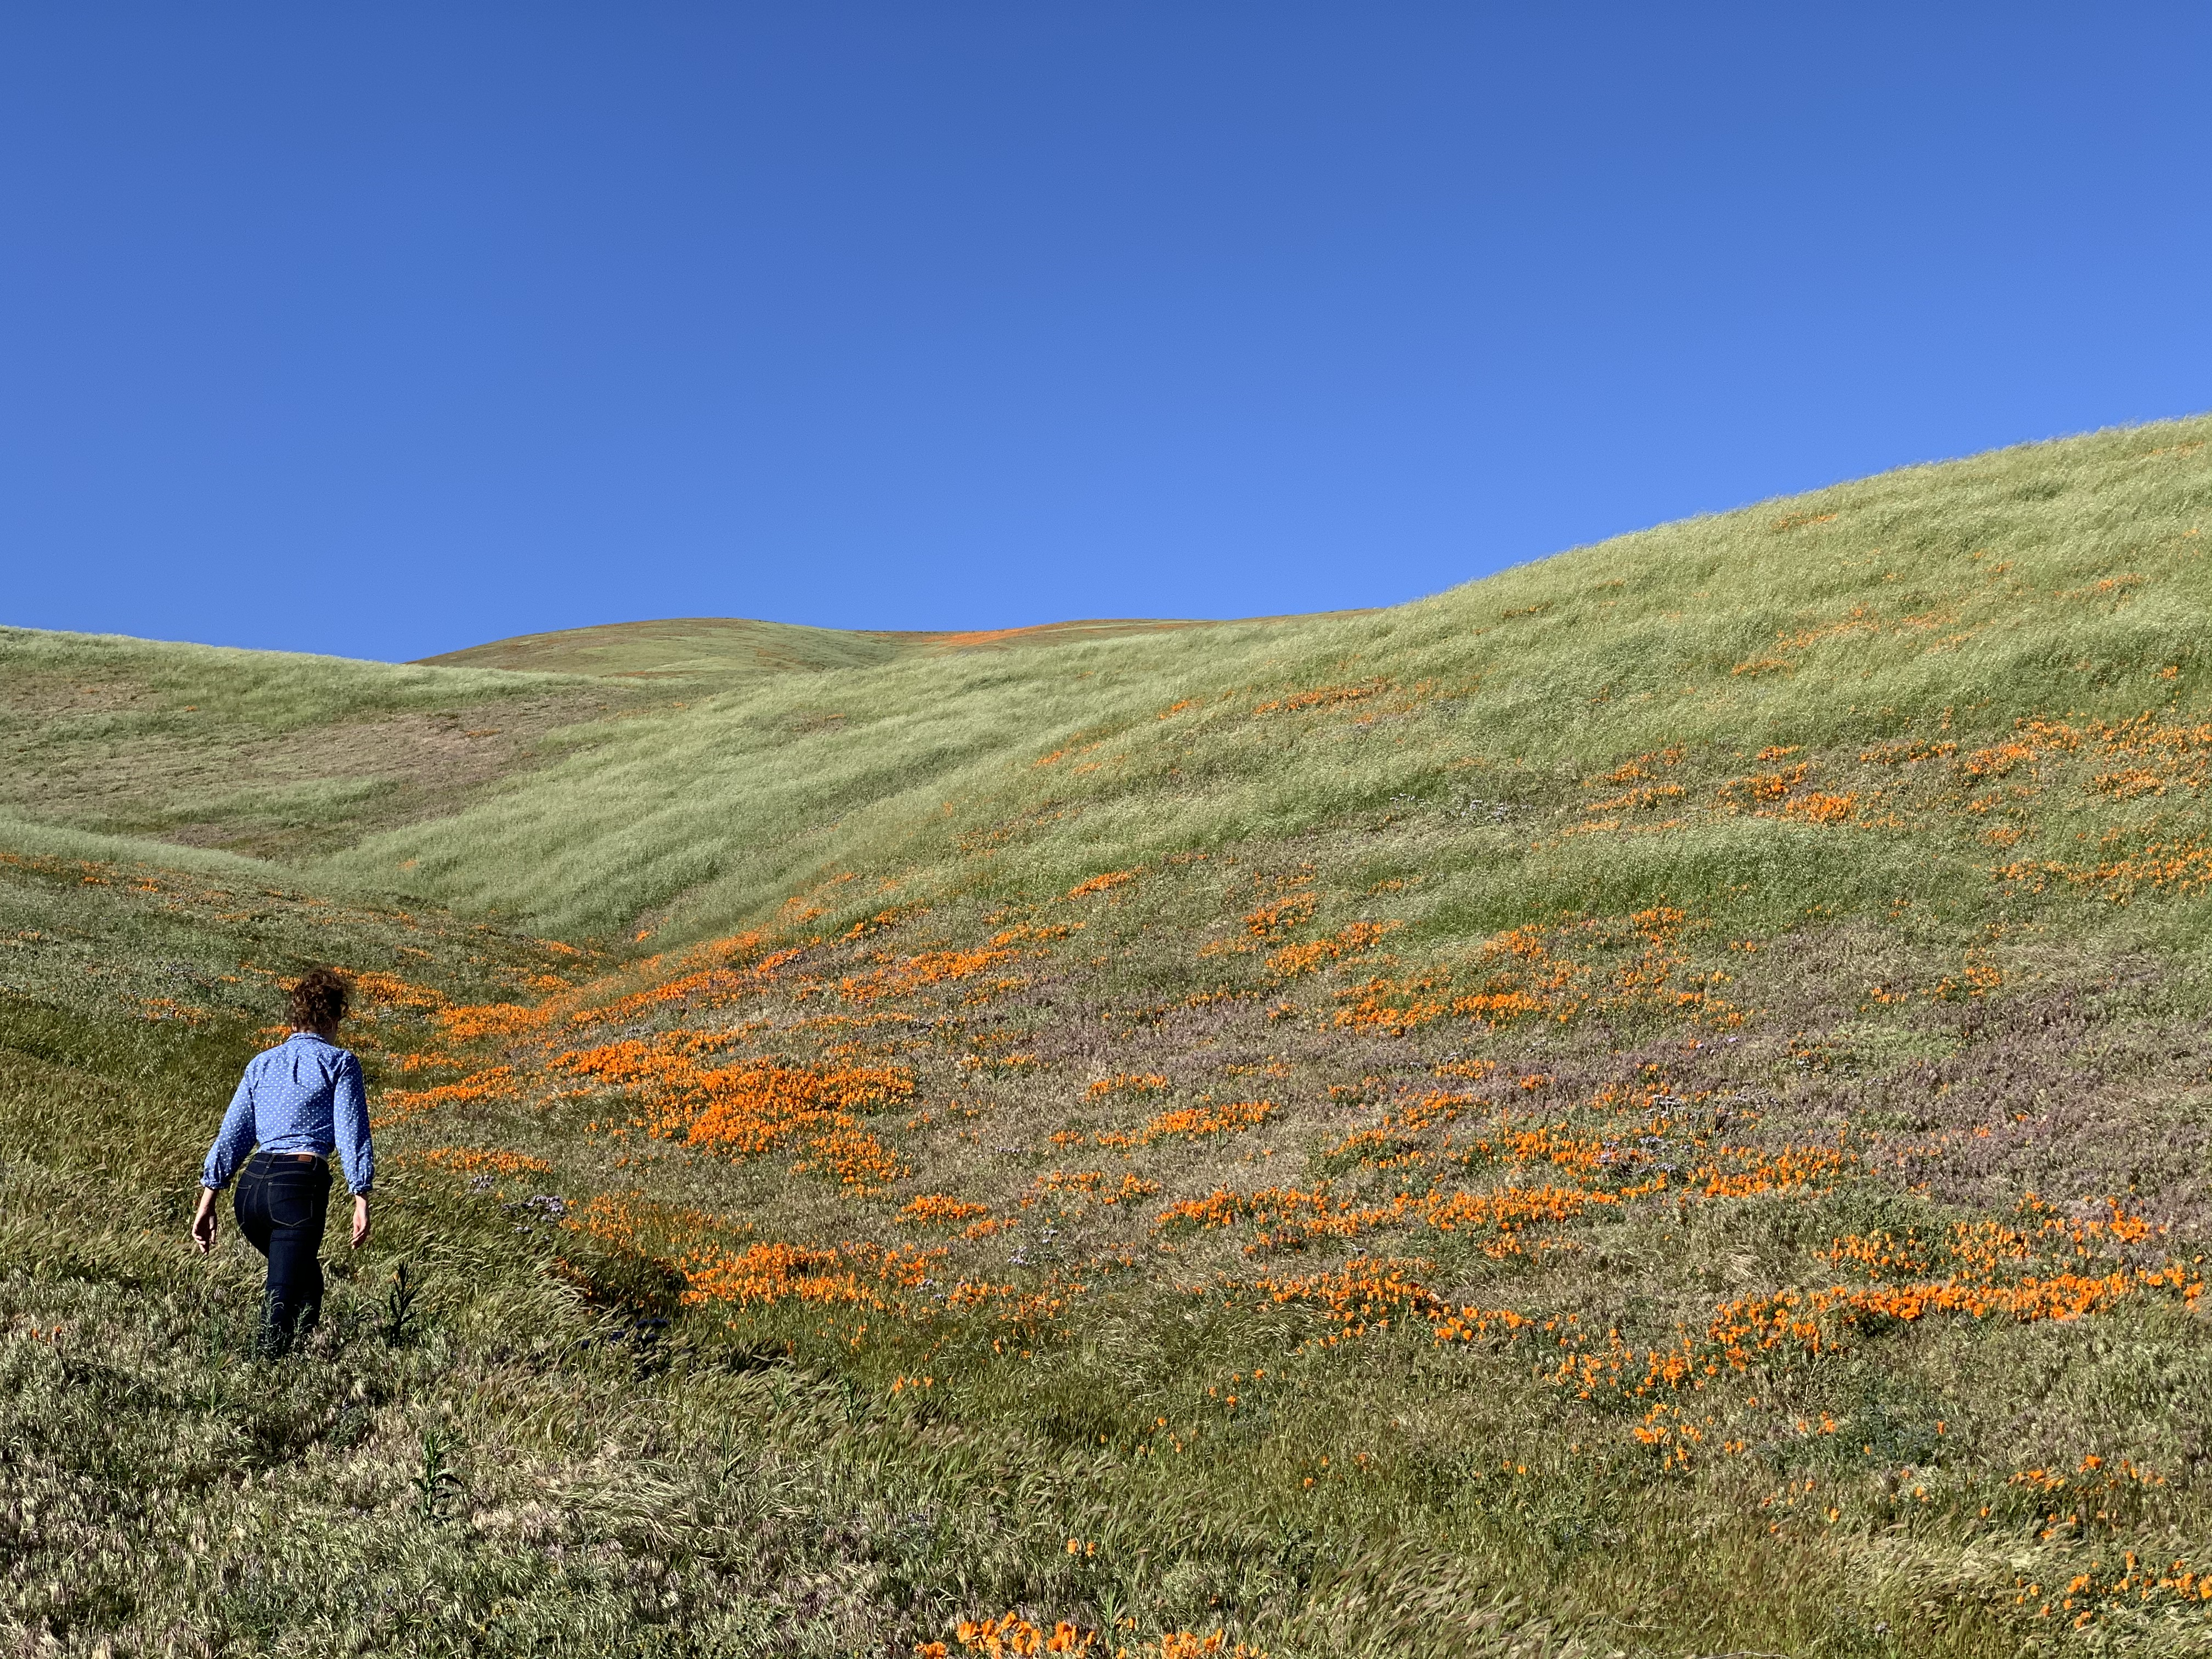 Alexx hiking up a hill of California poppies